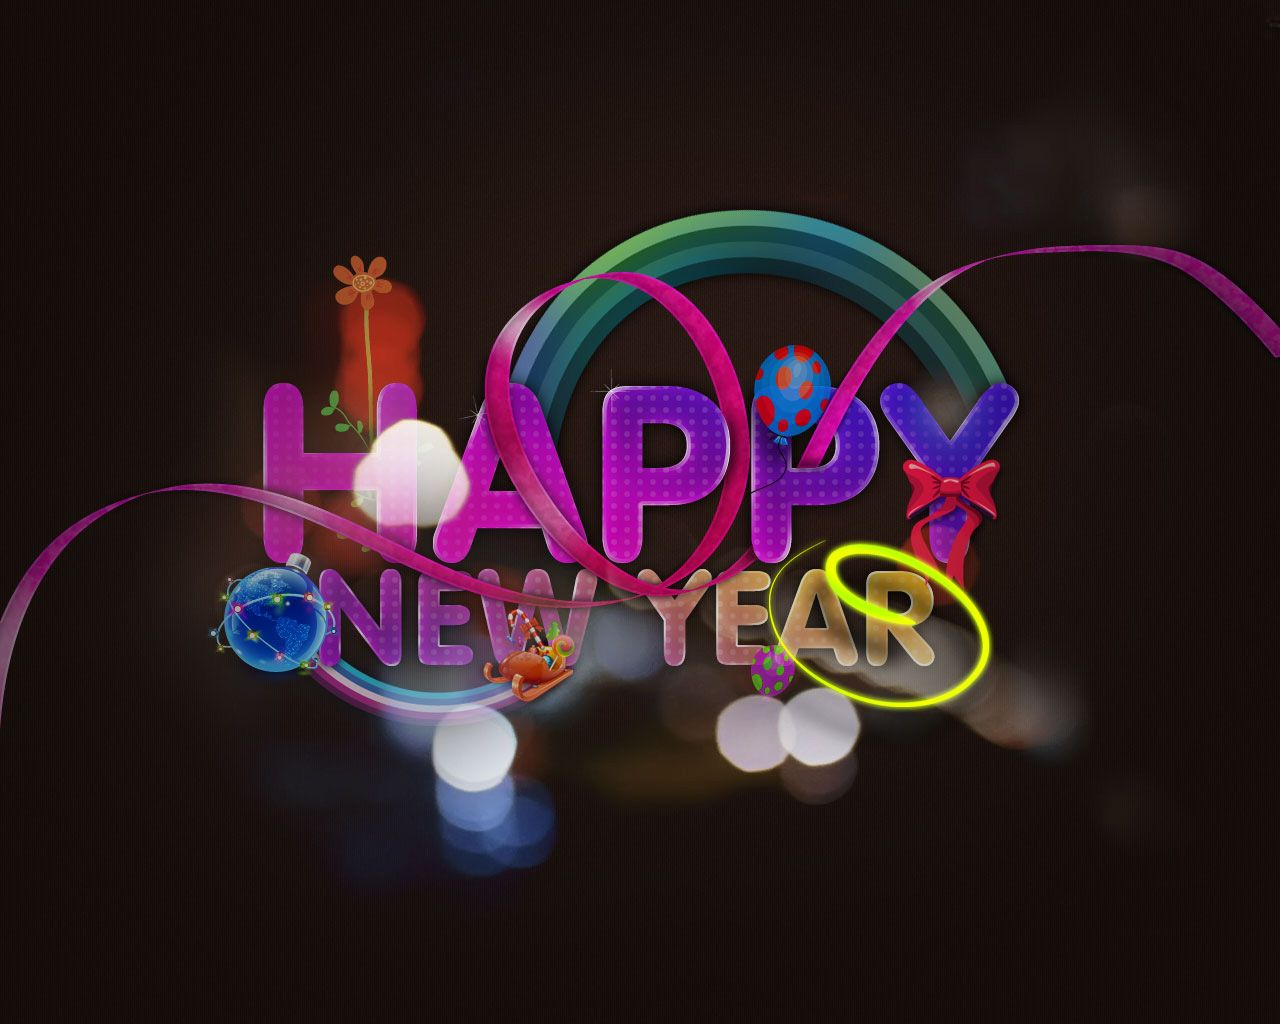 Celebrate The Happy New Year 2015 By Sending New Year Wishes